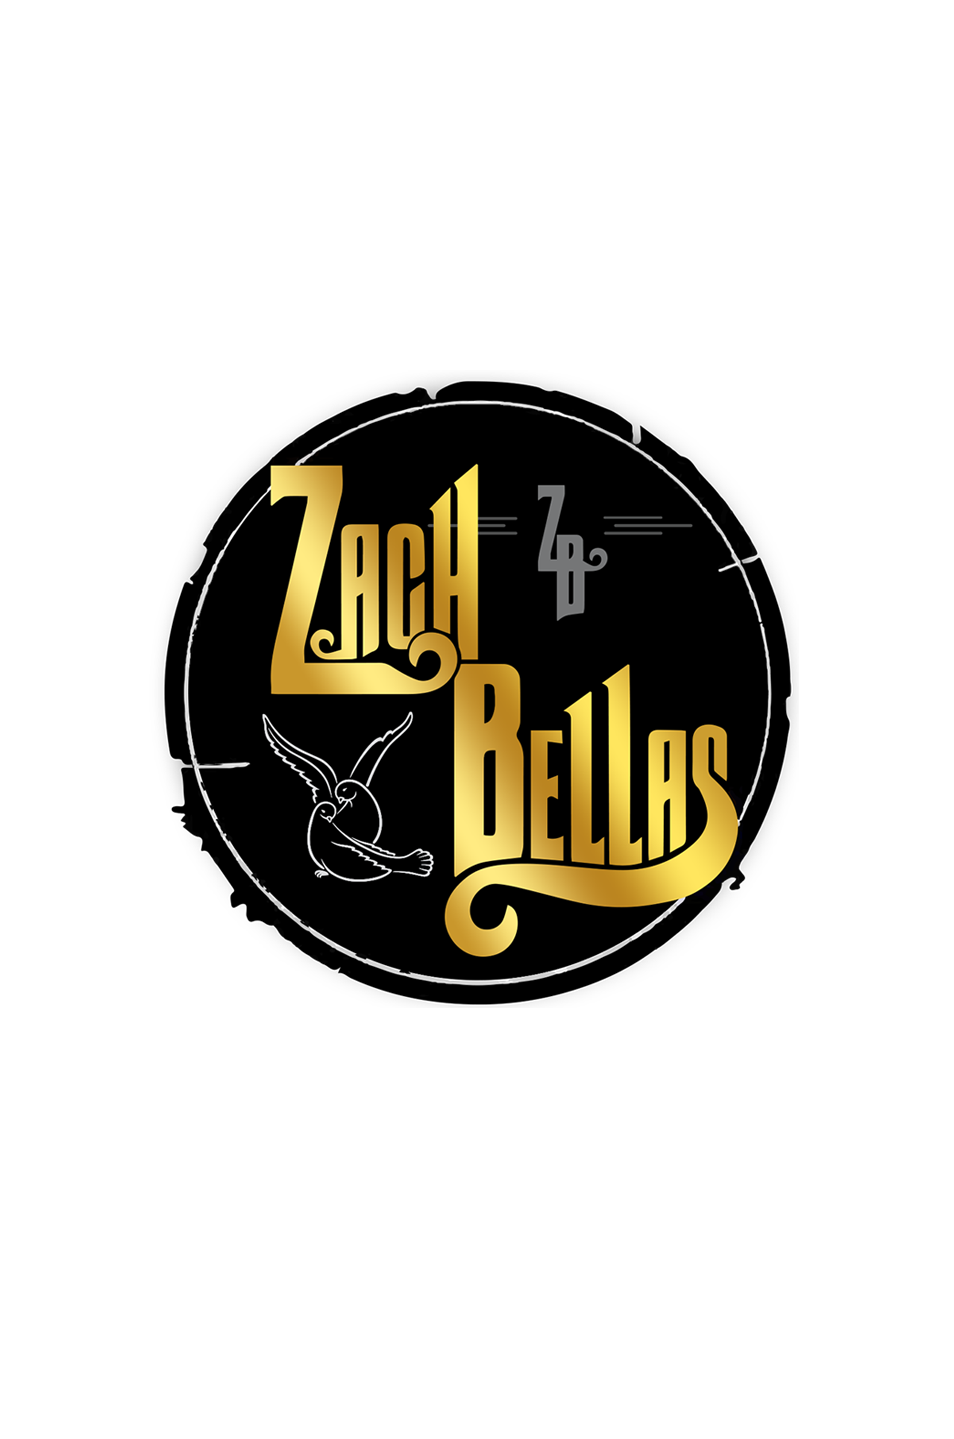 Zach Bellas